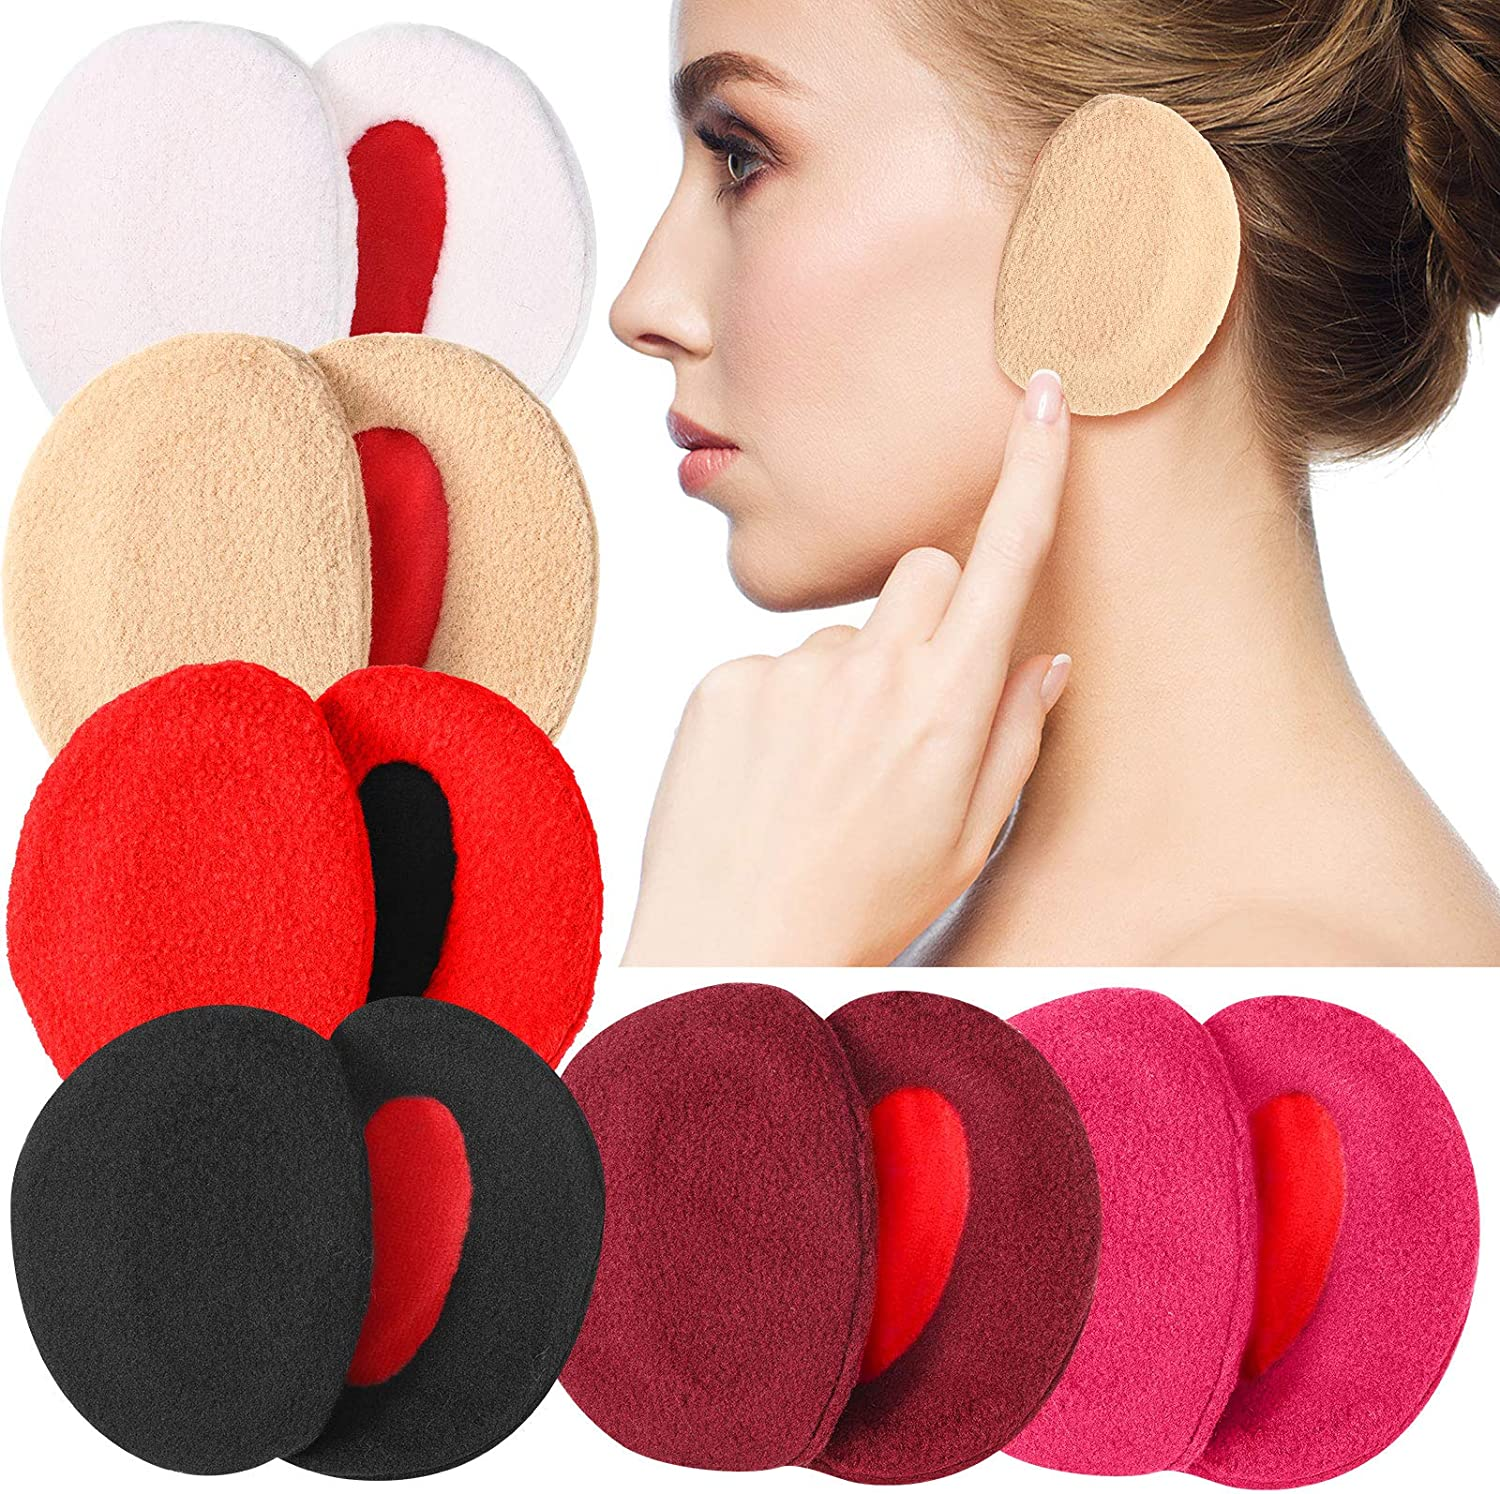 6 Colors 6 Pairs Earmuffs Bandless Fleece Ear Warmers Winter Ear Covers Unisex